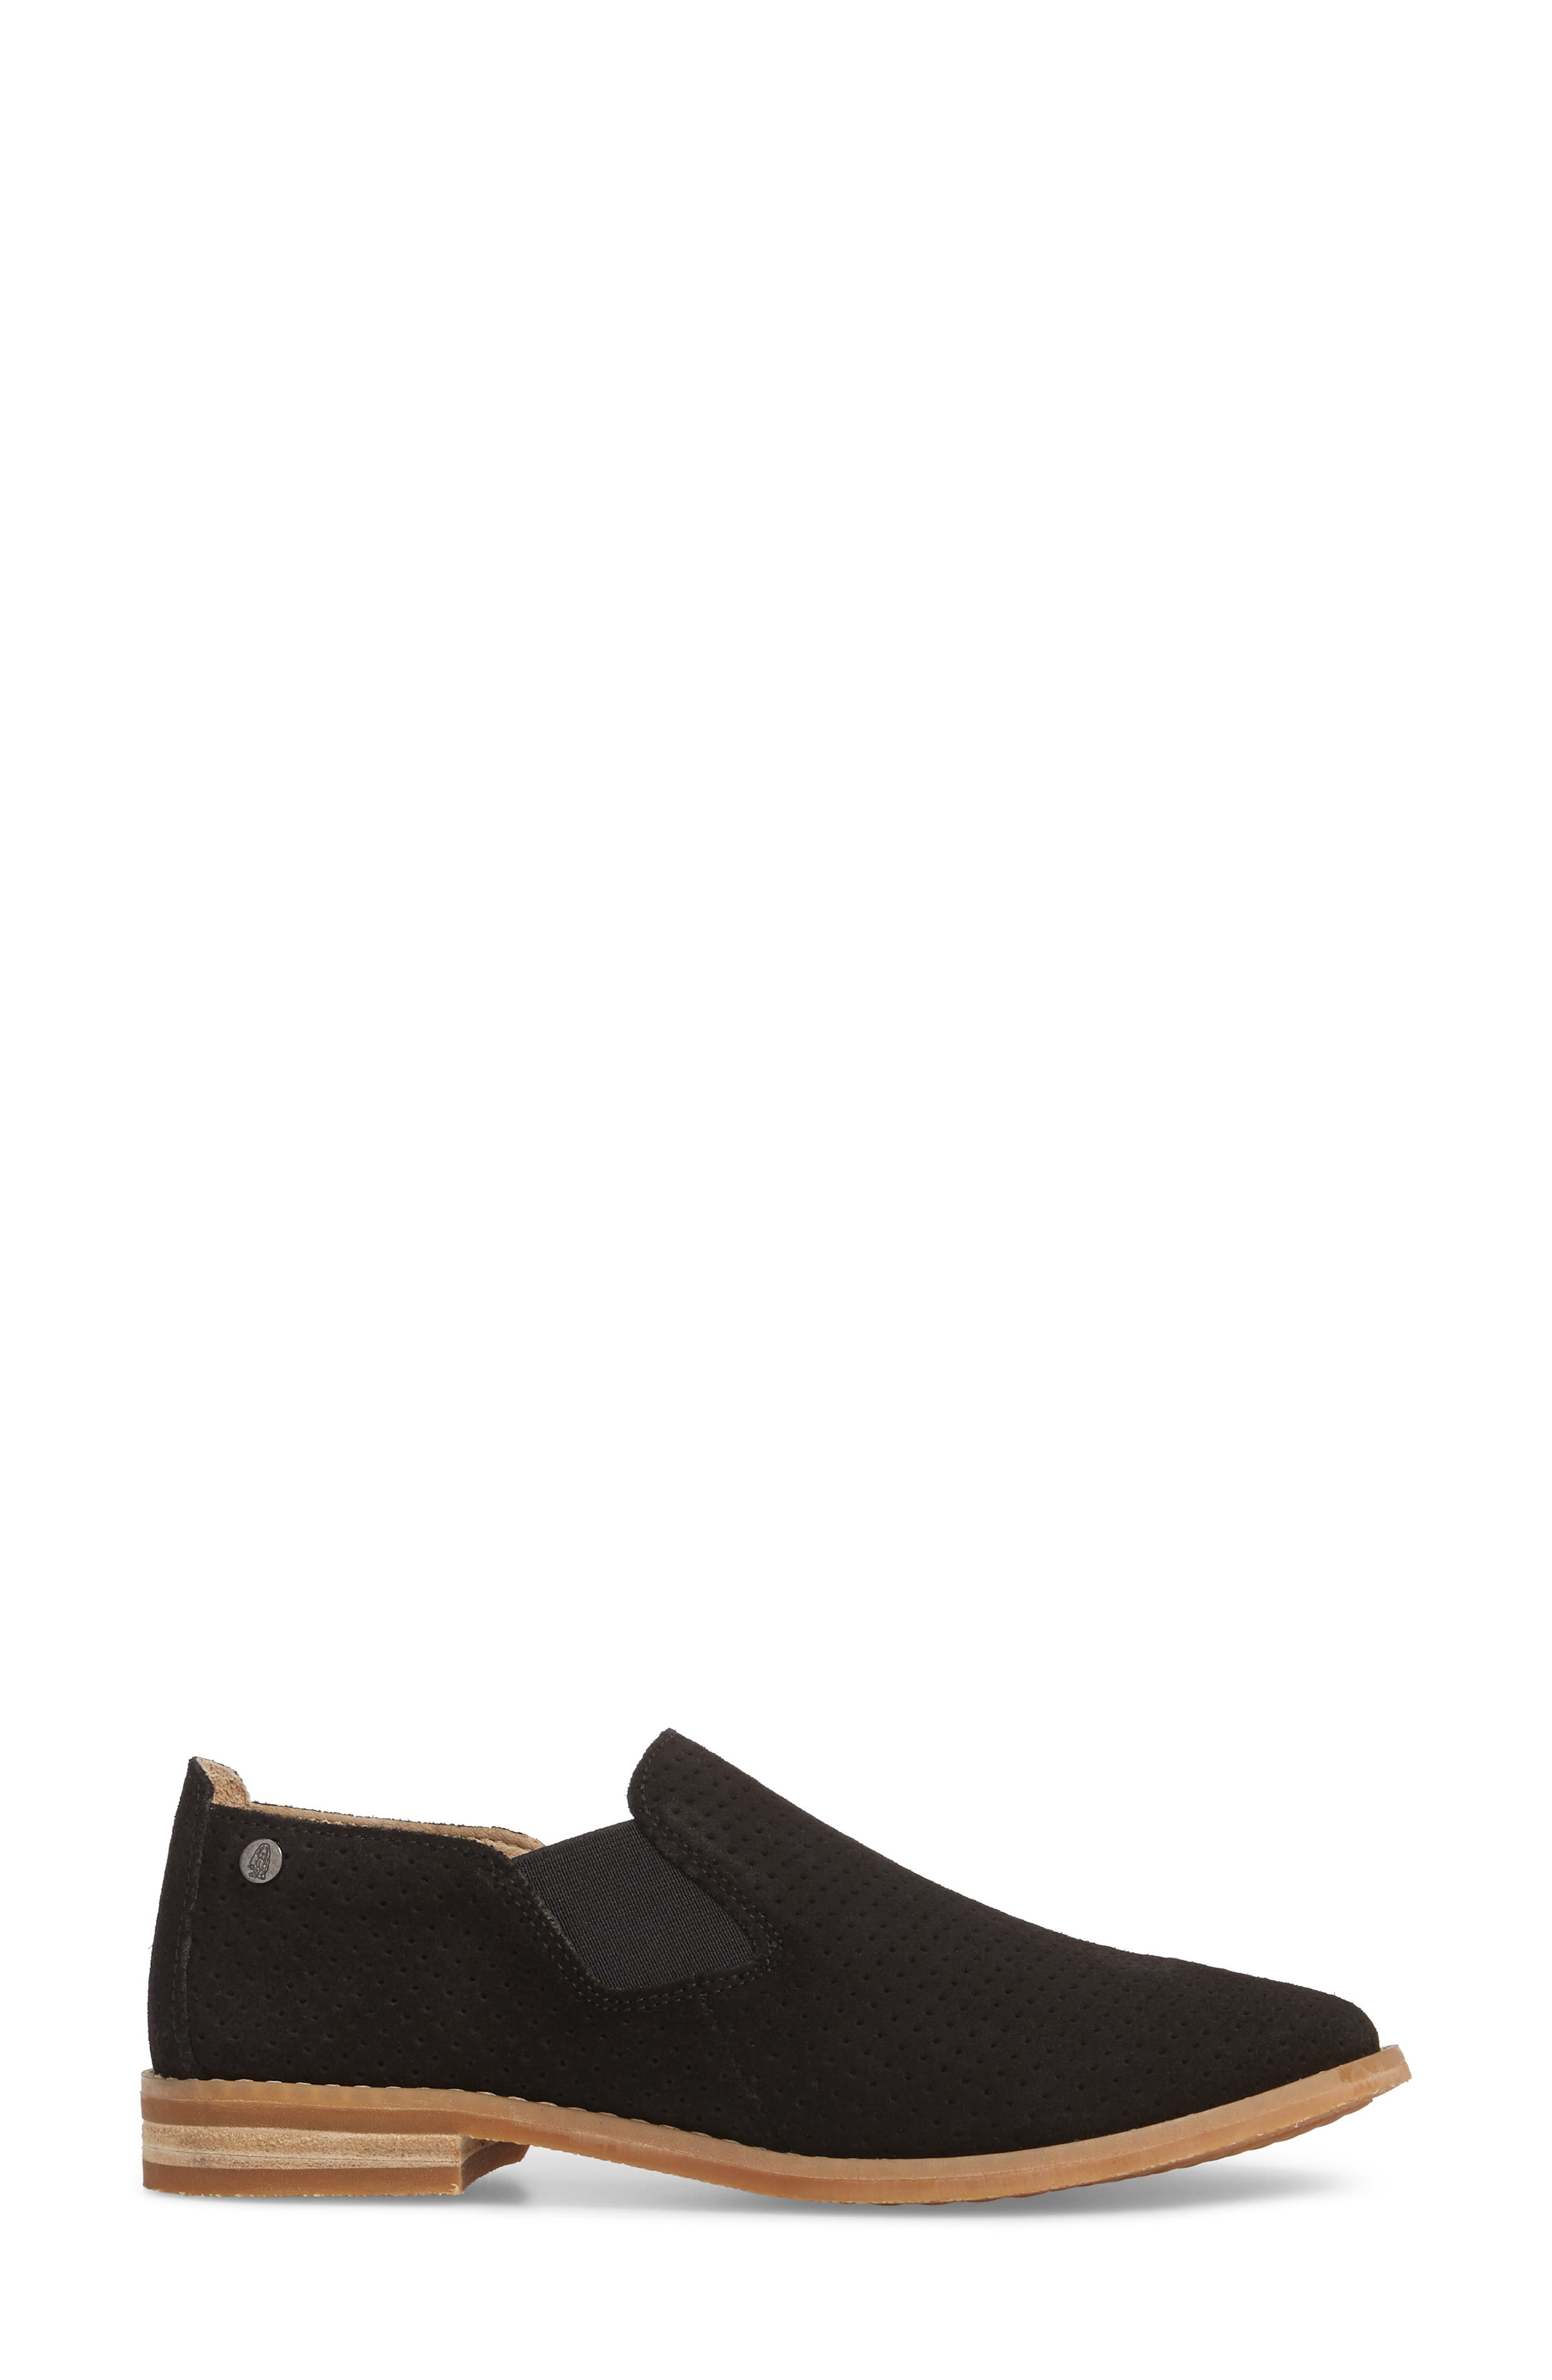 Hush Puppies Analise Clever Slip-On,                             Alternate thumbnail 3, color,                             Black Perforated Suede